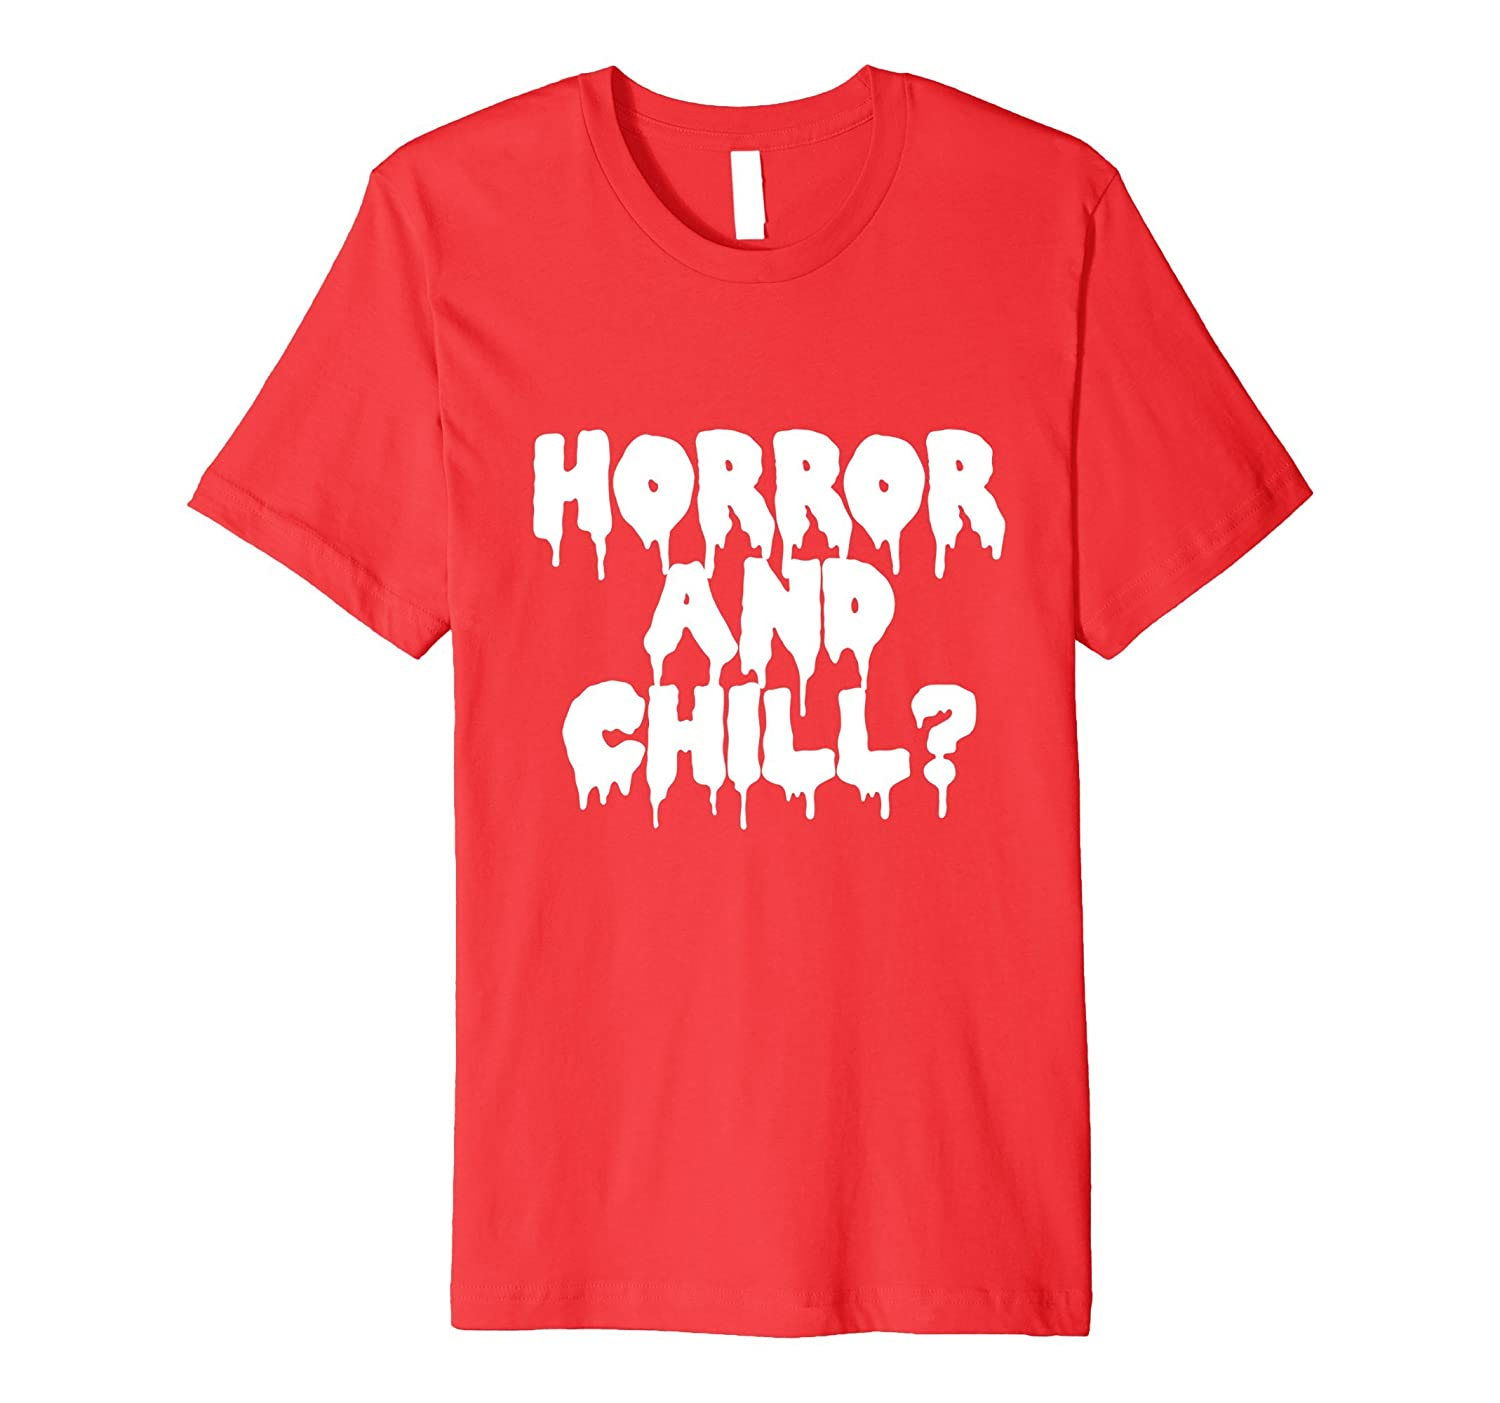 Horror Movies and Chill? Creepy Gothic T-Shirt-TJ